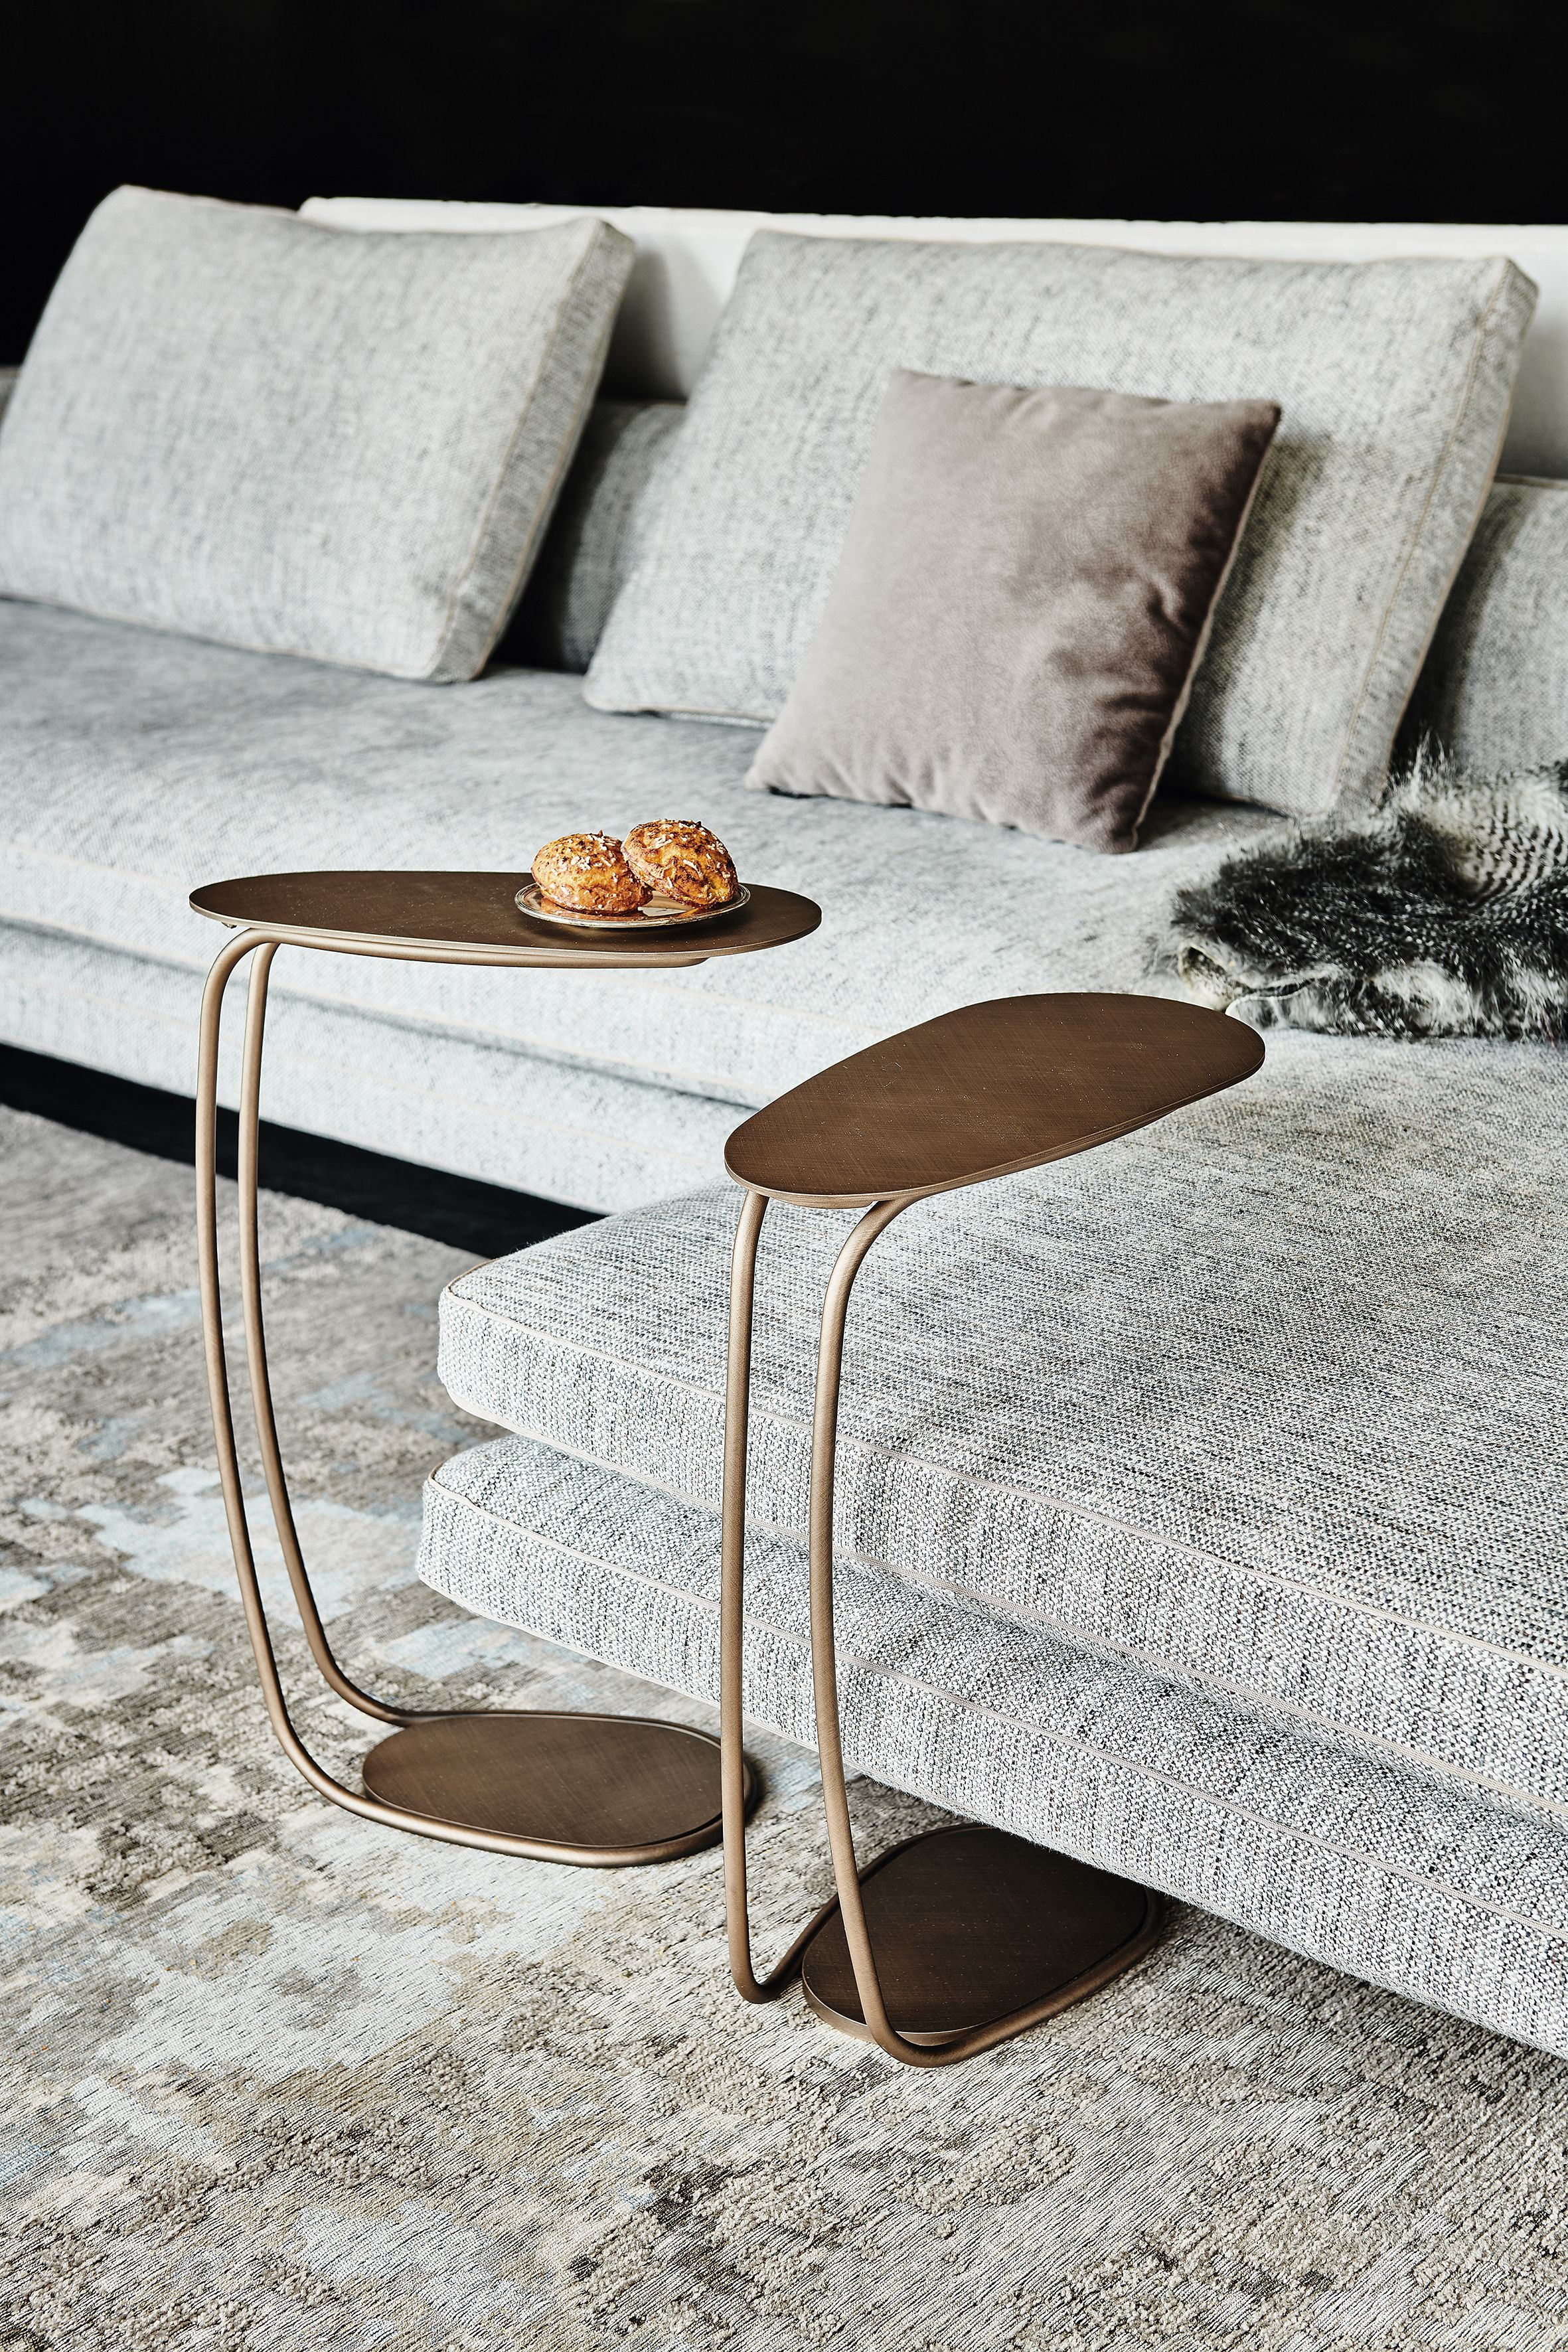 Side Table With Frame And Top In Titanium Gfm11 Embossed Lacquered Steel Or Brushed Bronze Coffee Table Furniture Side Tables Table Furniture